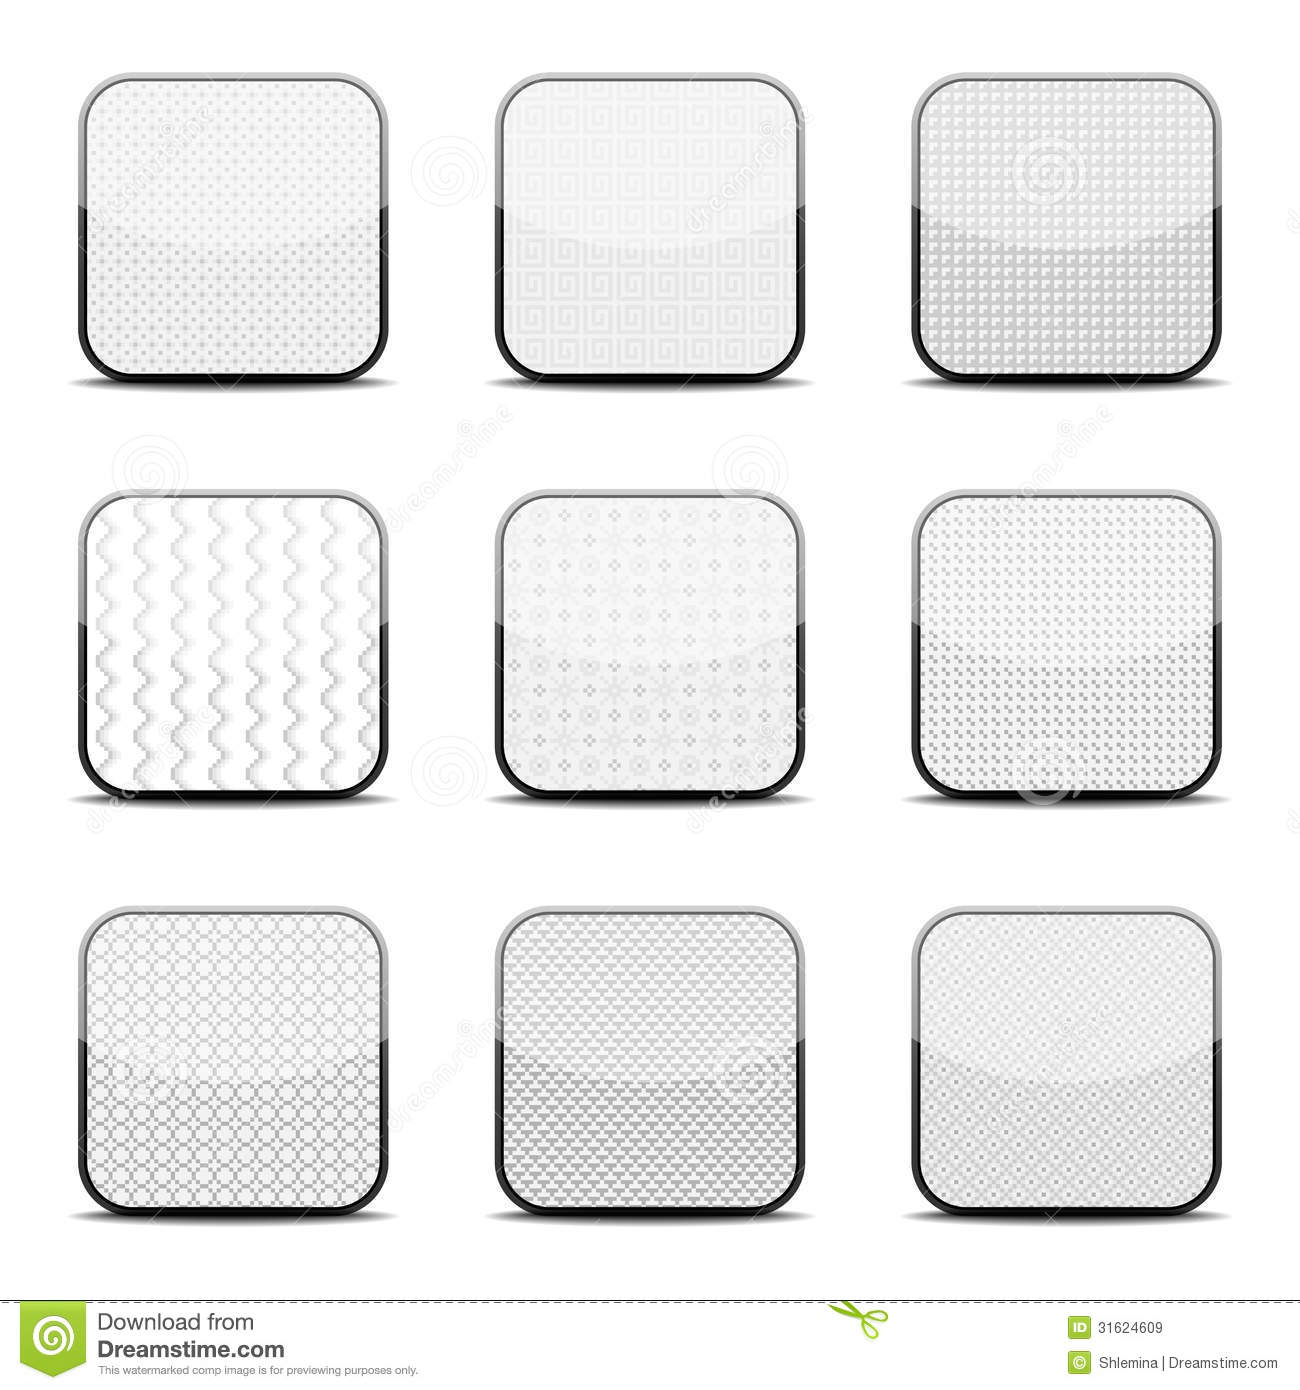 White Textured Icon Templates Stock Vector - Illustration of ...